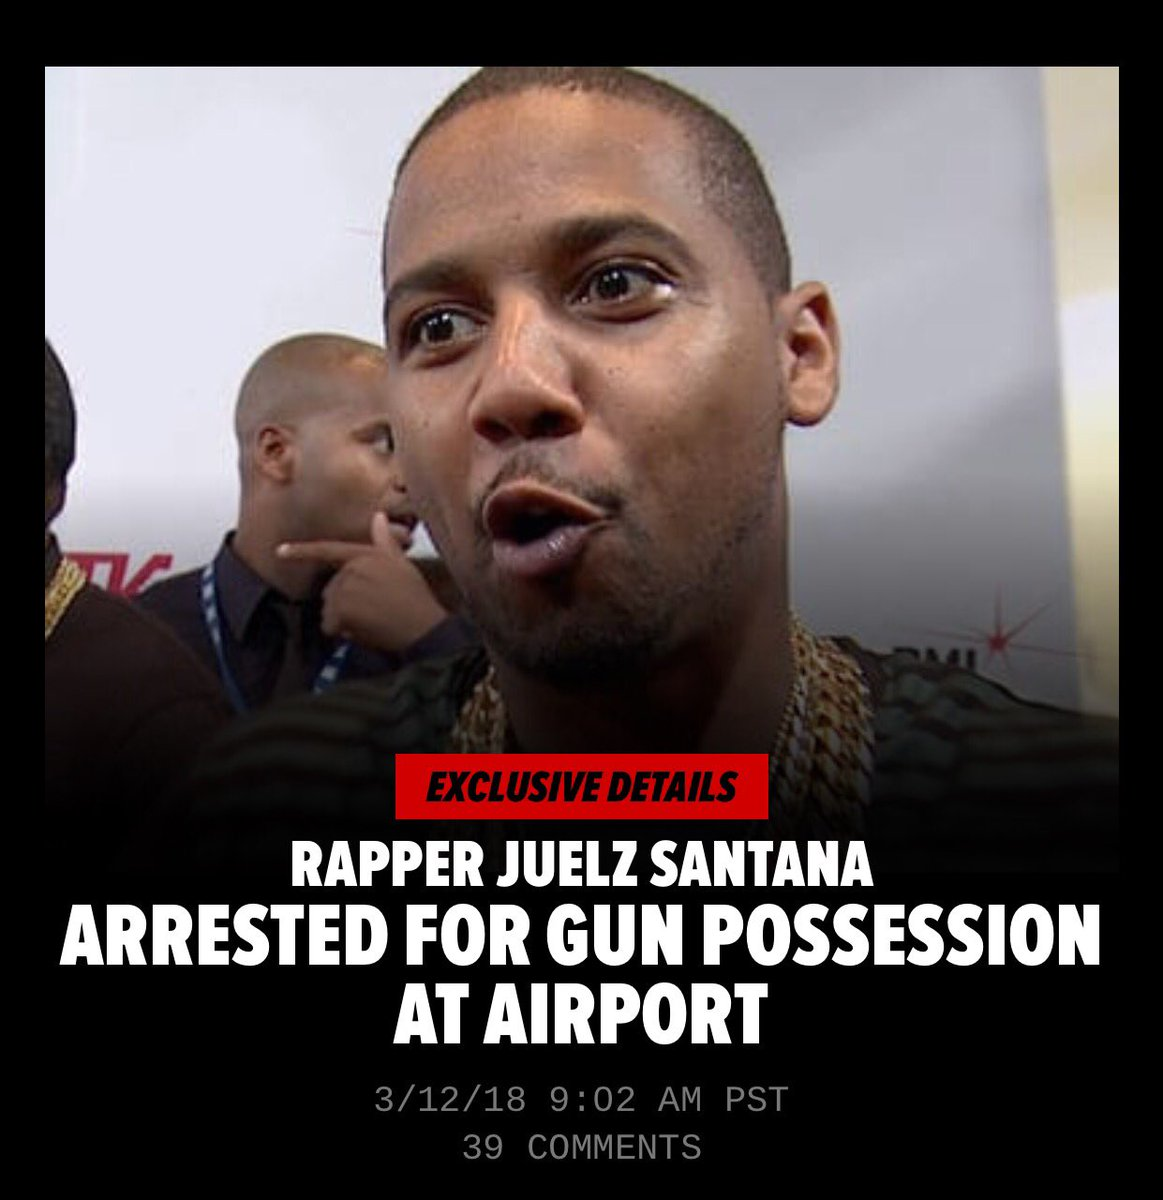 #JuelzSantana surrendered to the cops. He was arrested today at 1 am. Santana was booked for unlawful possession of a weapon, possession of a controlled dangerous substance and an unspecified federal warrant 🤕 #MyMixtapez